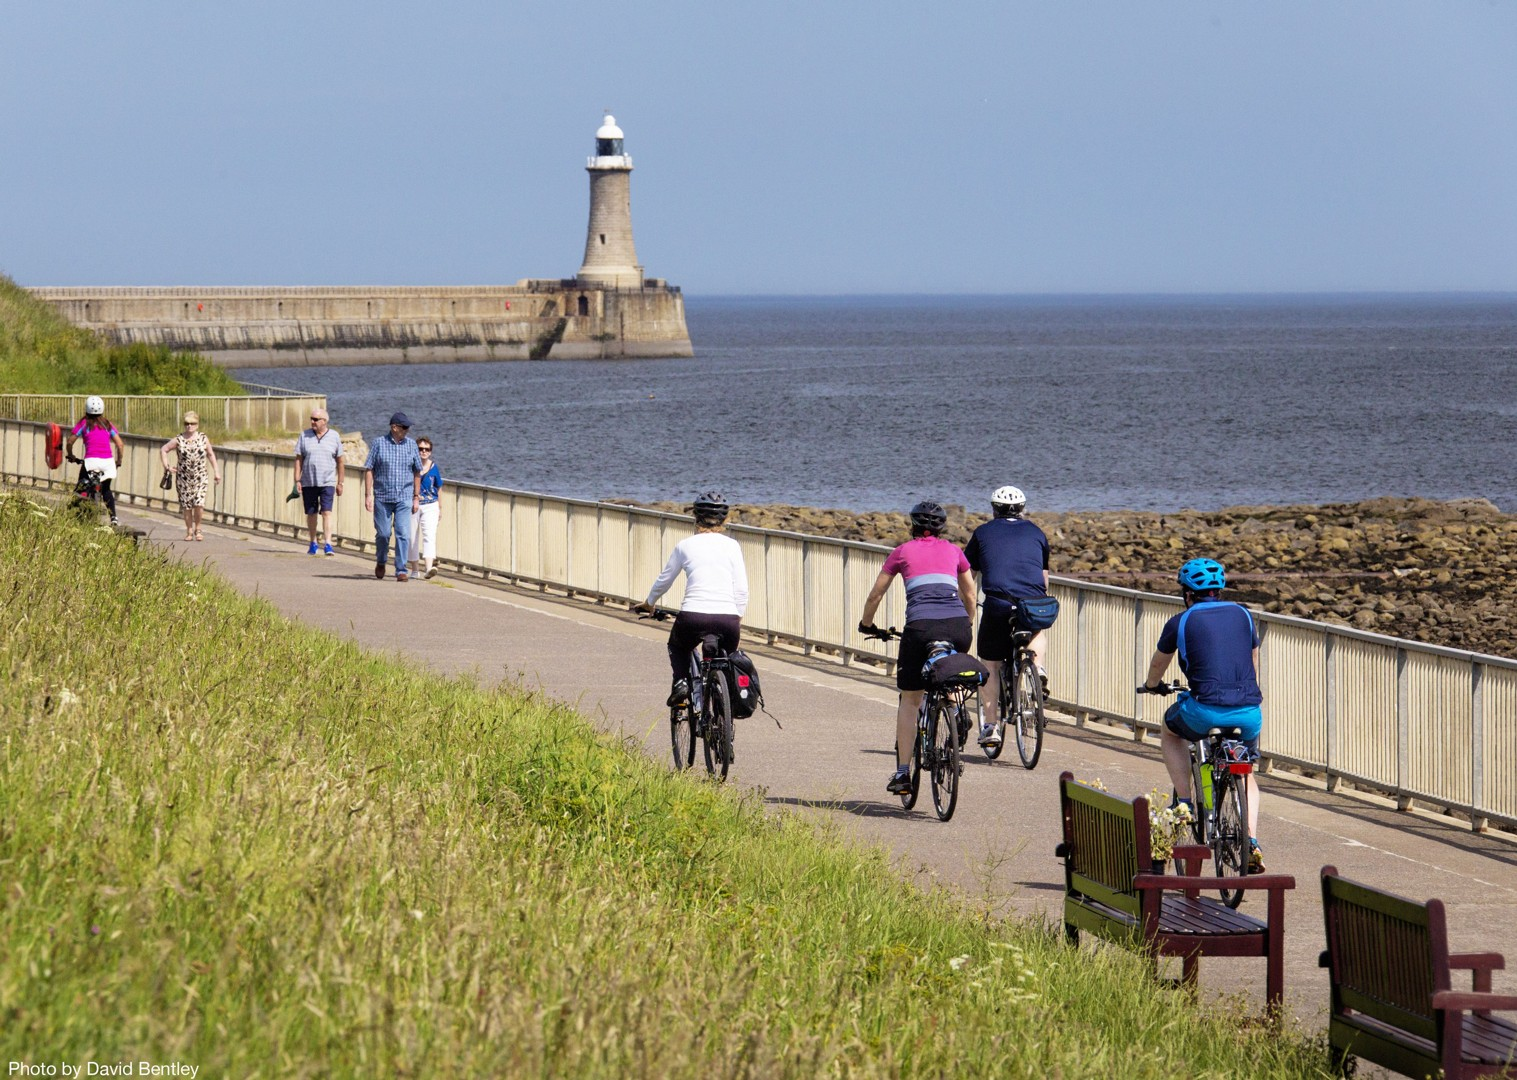 Supported-Leisure-Cycling-Holiday-Hadrians-Cycleway-UK-cycle-Tynemouth.jpg - UK - Hadrian's Cycleway - Supported Leisure Cycling Holiday - Leisure Cycling